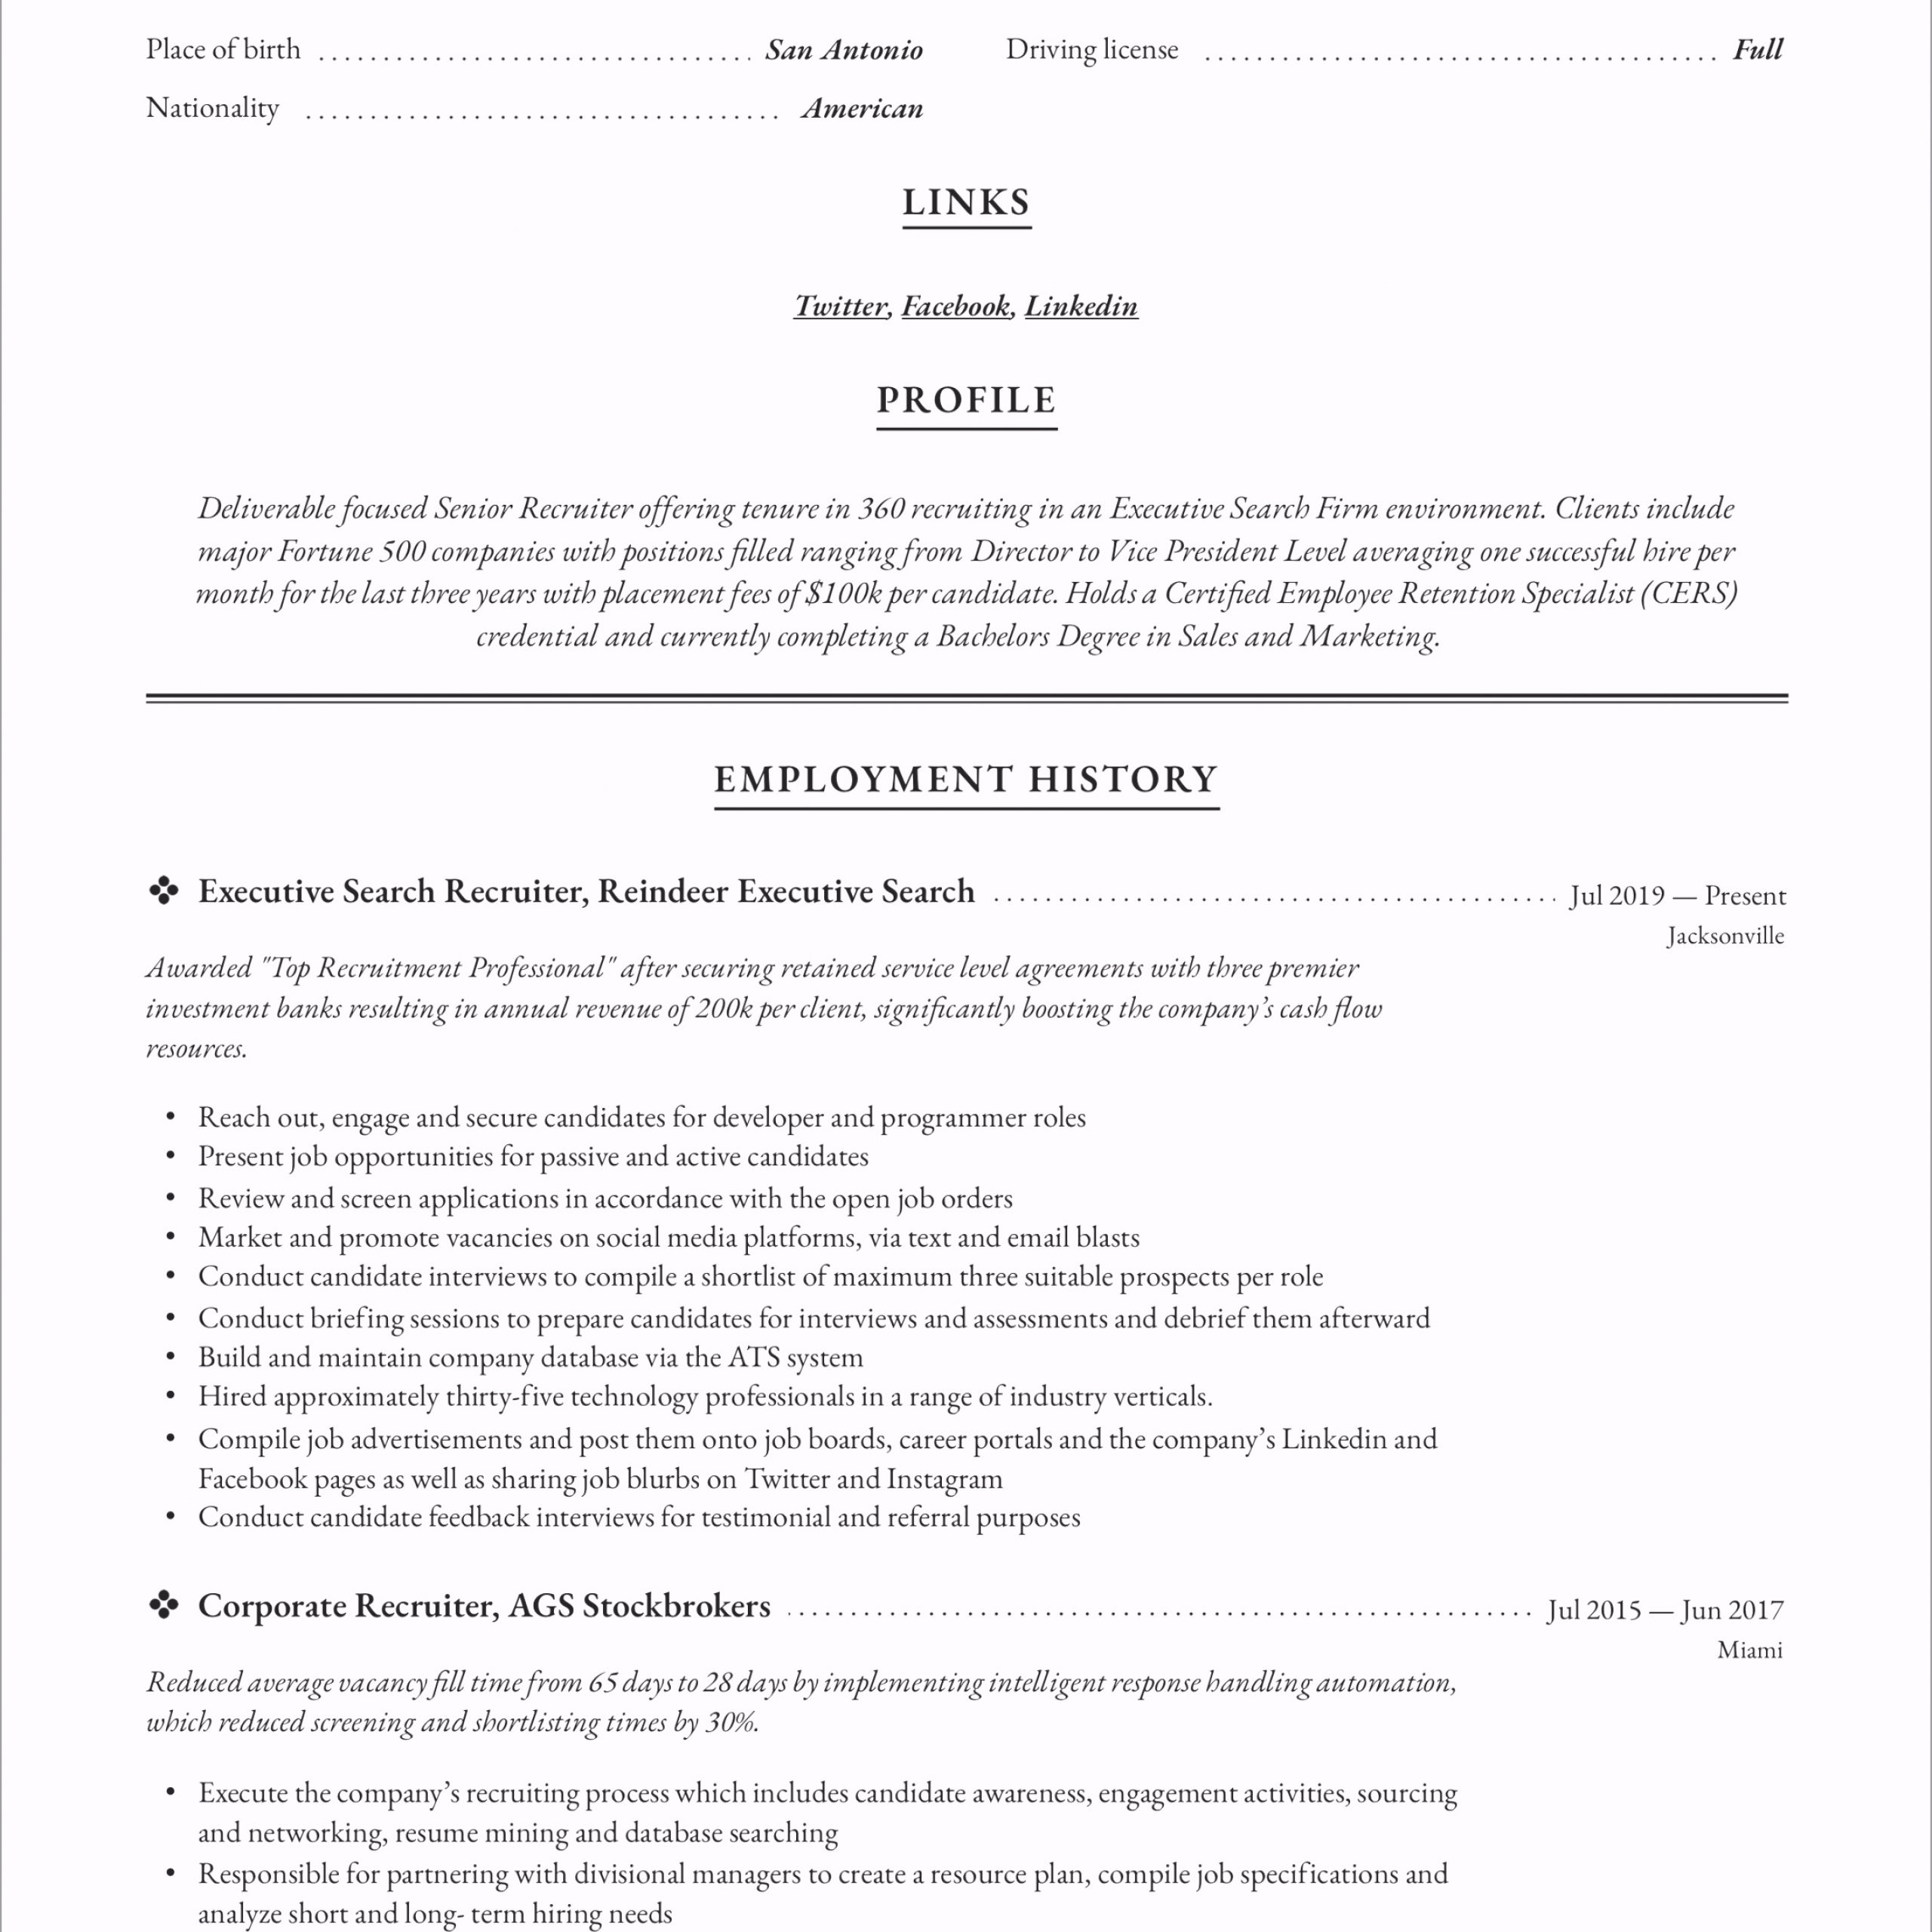 Recruiter Resume 3 opfwr